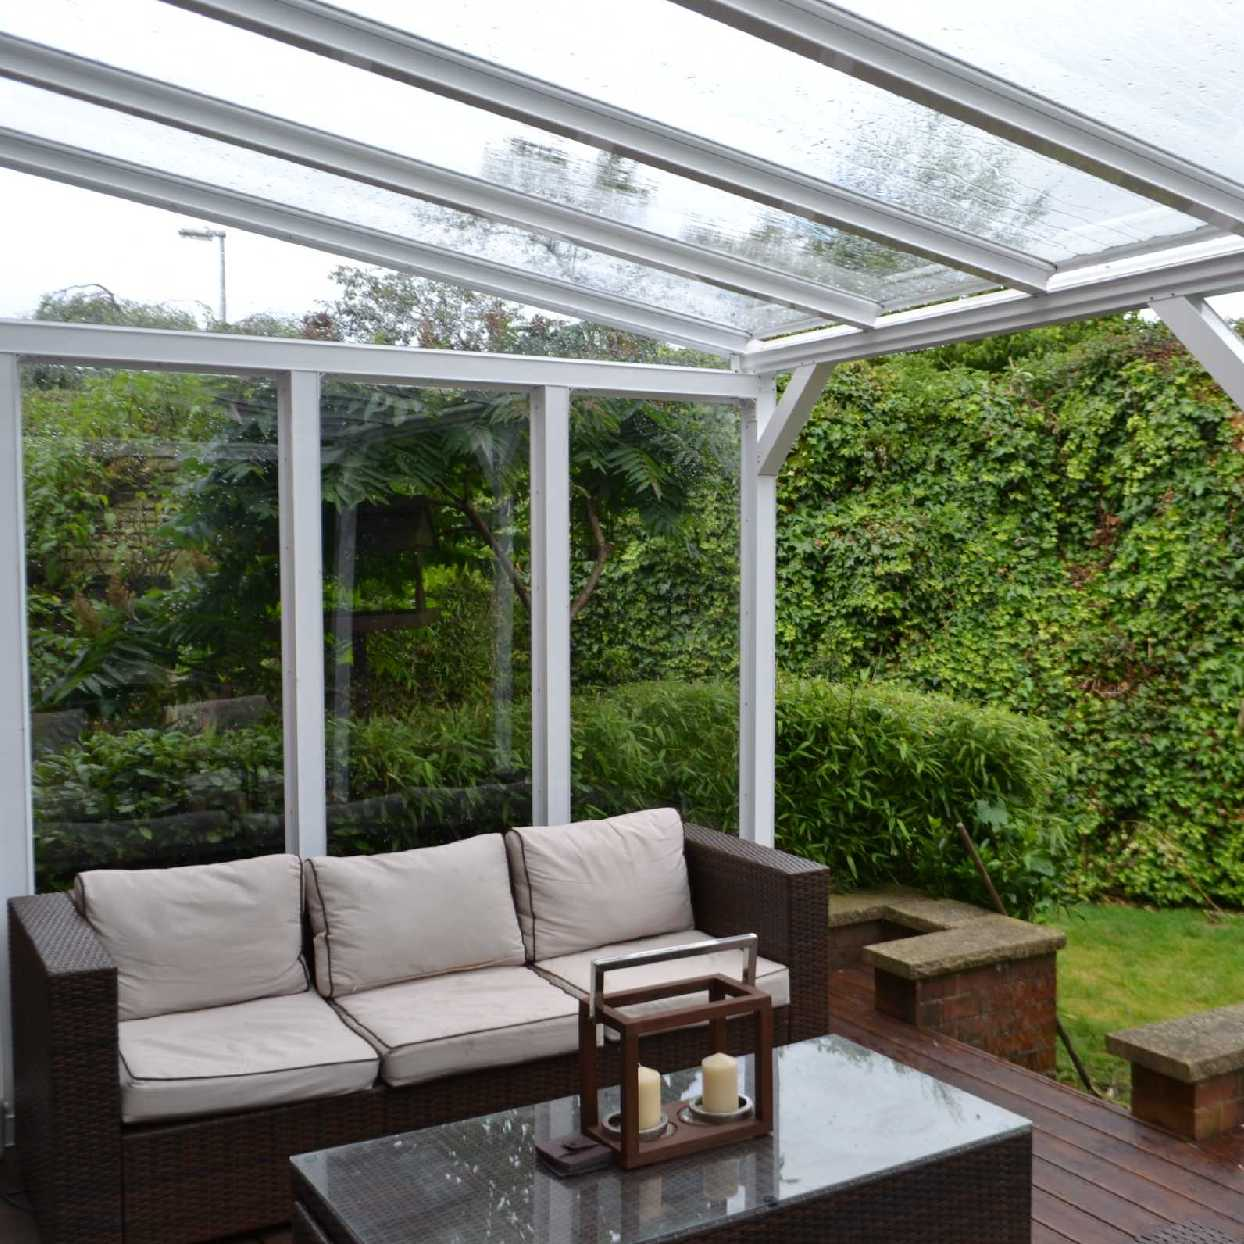 Omega Smart Lean-To Canopy with 6mm Glass Clear Plate Polycarbonate Glazing - 4.2m (W) x 3.0m (P), (3) Supporting Posts